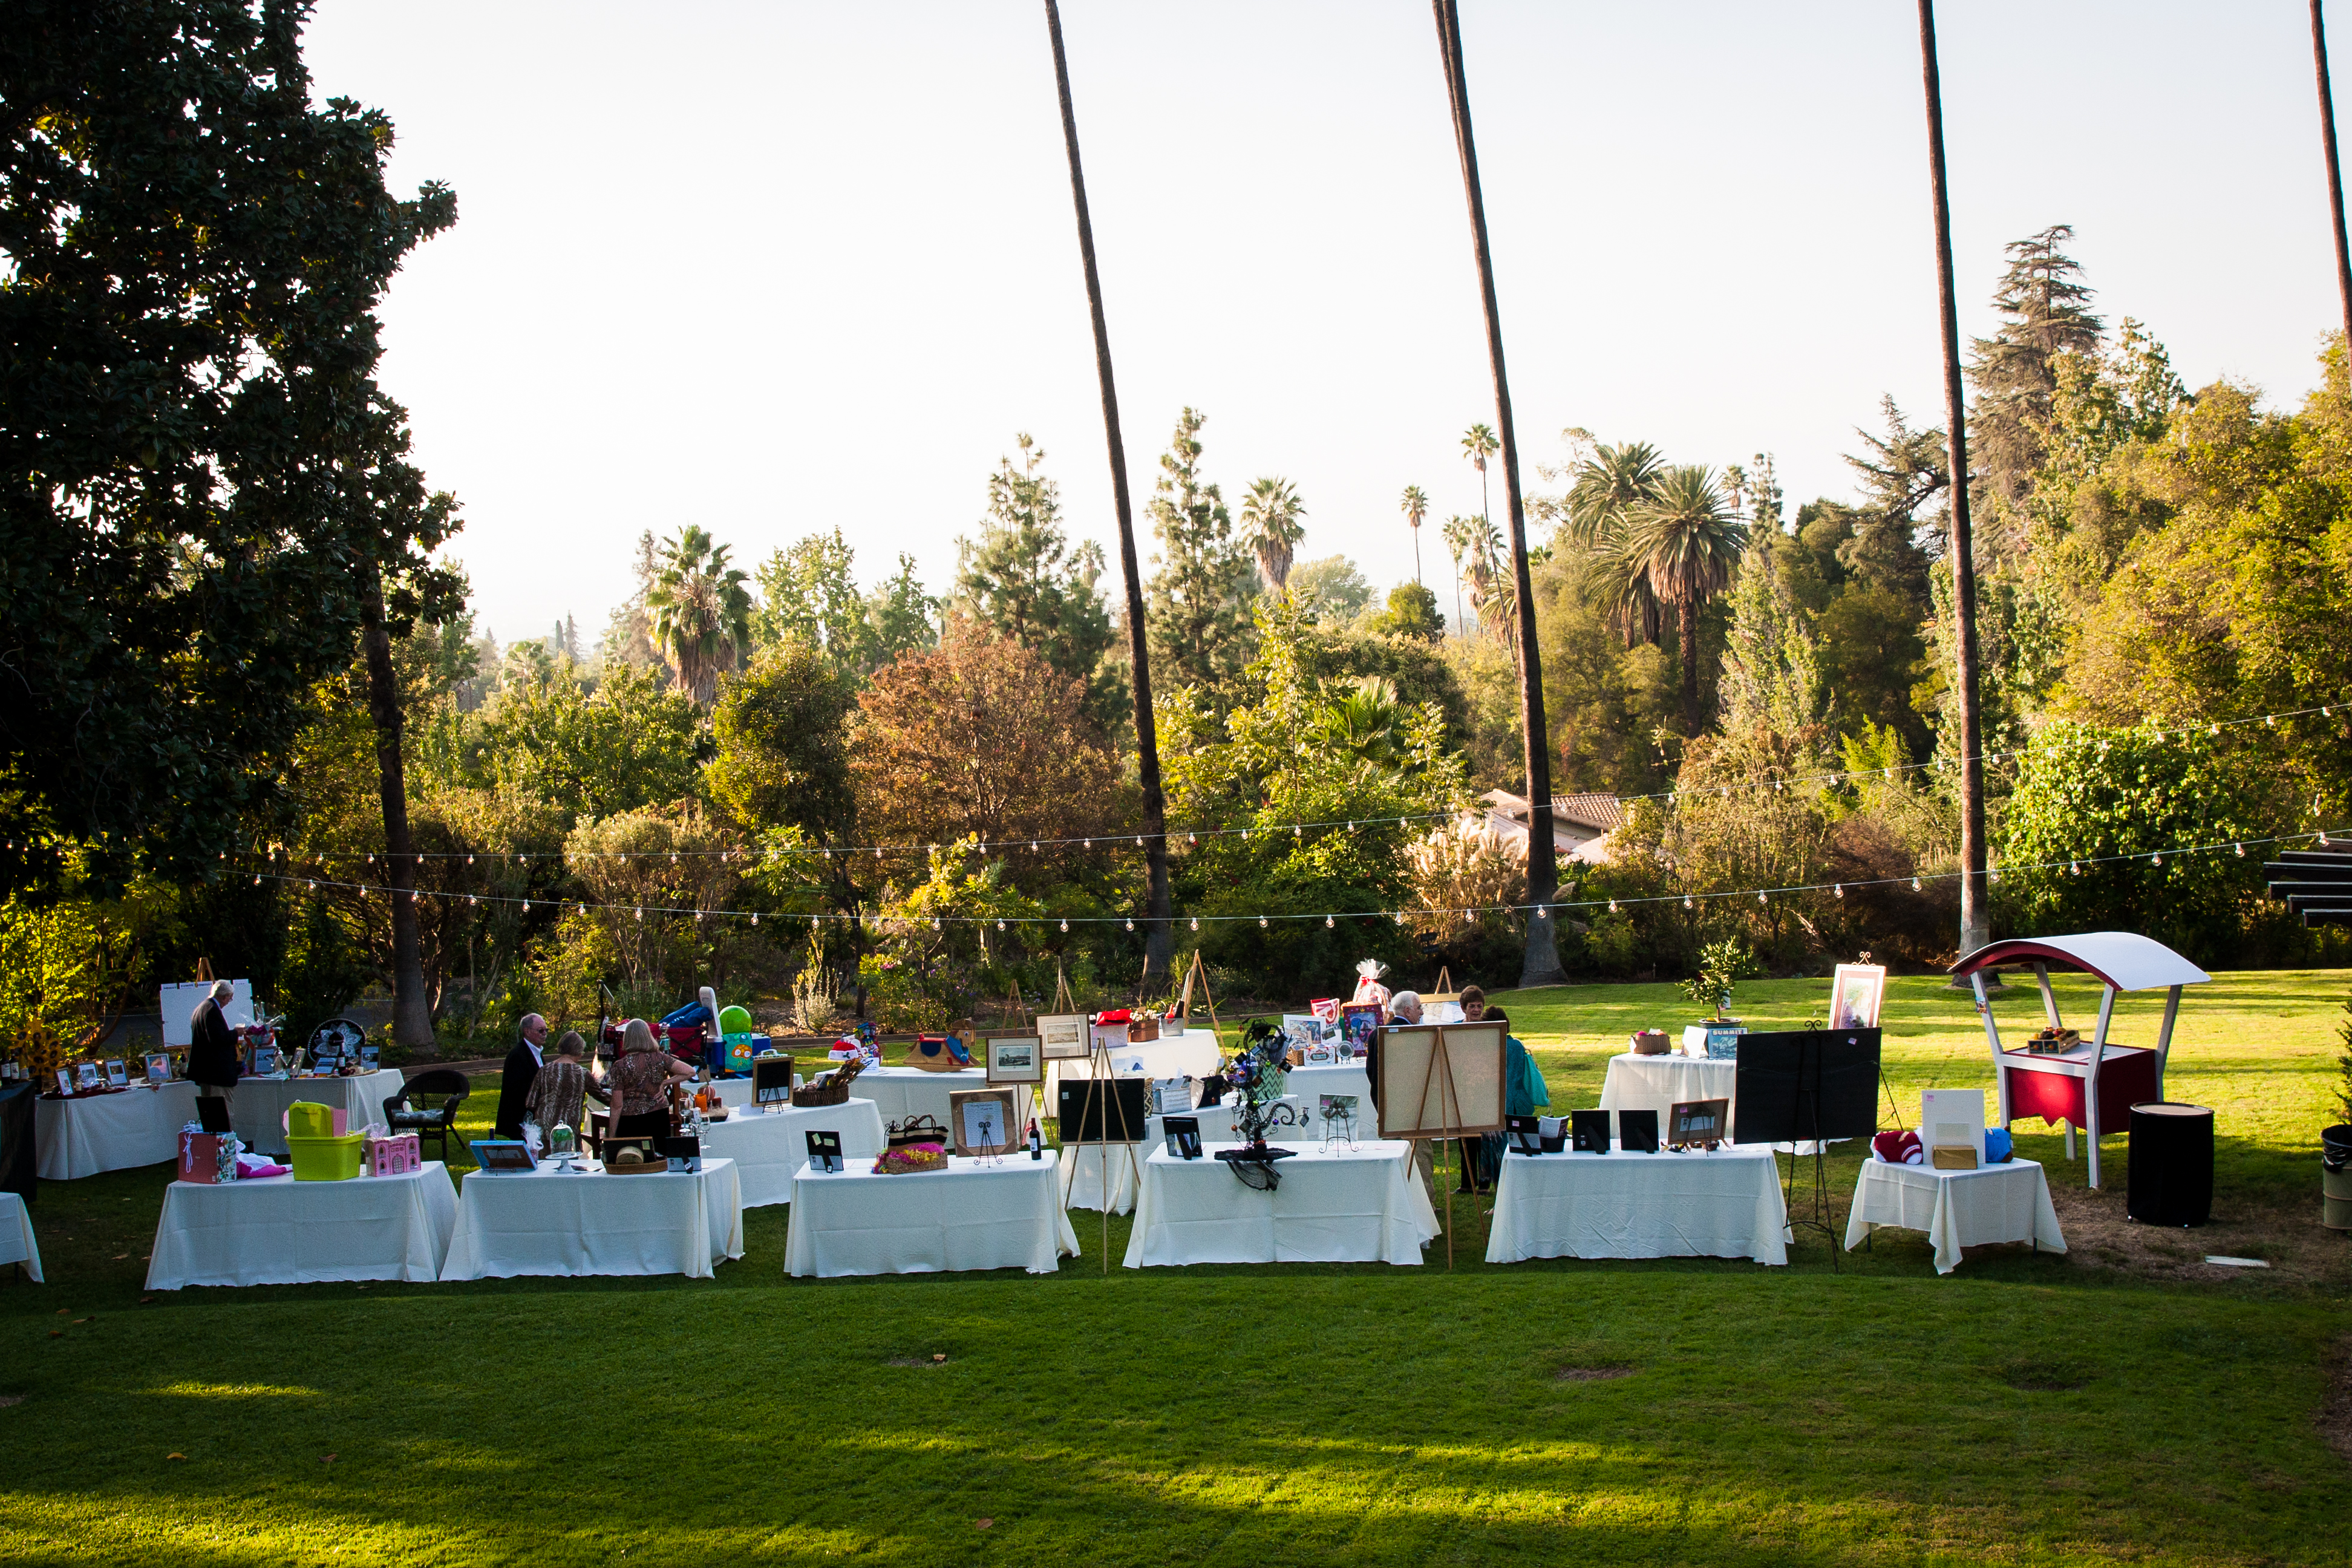 2014 Kimberlycrestsoiree 28 Zps3ea4e930 Kimberly Crest House Gardens